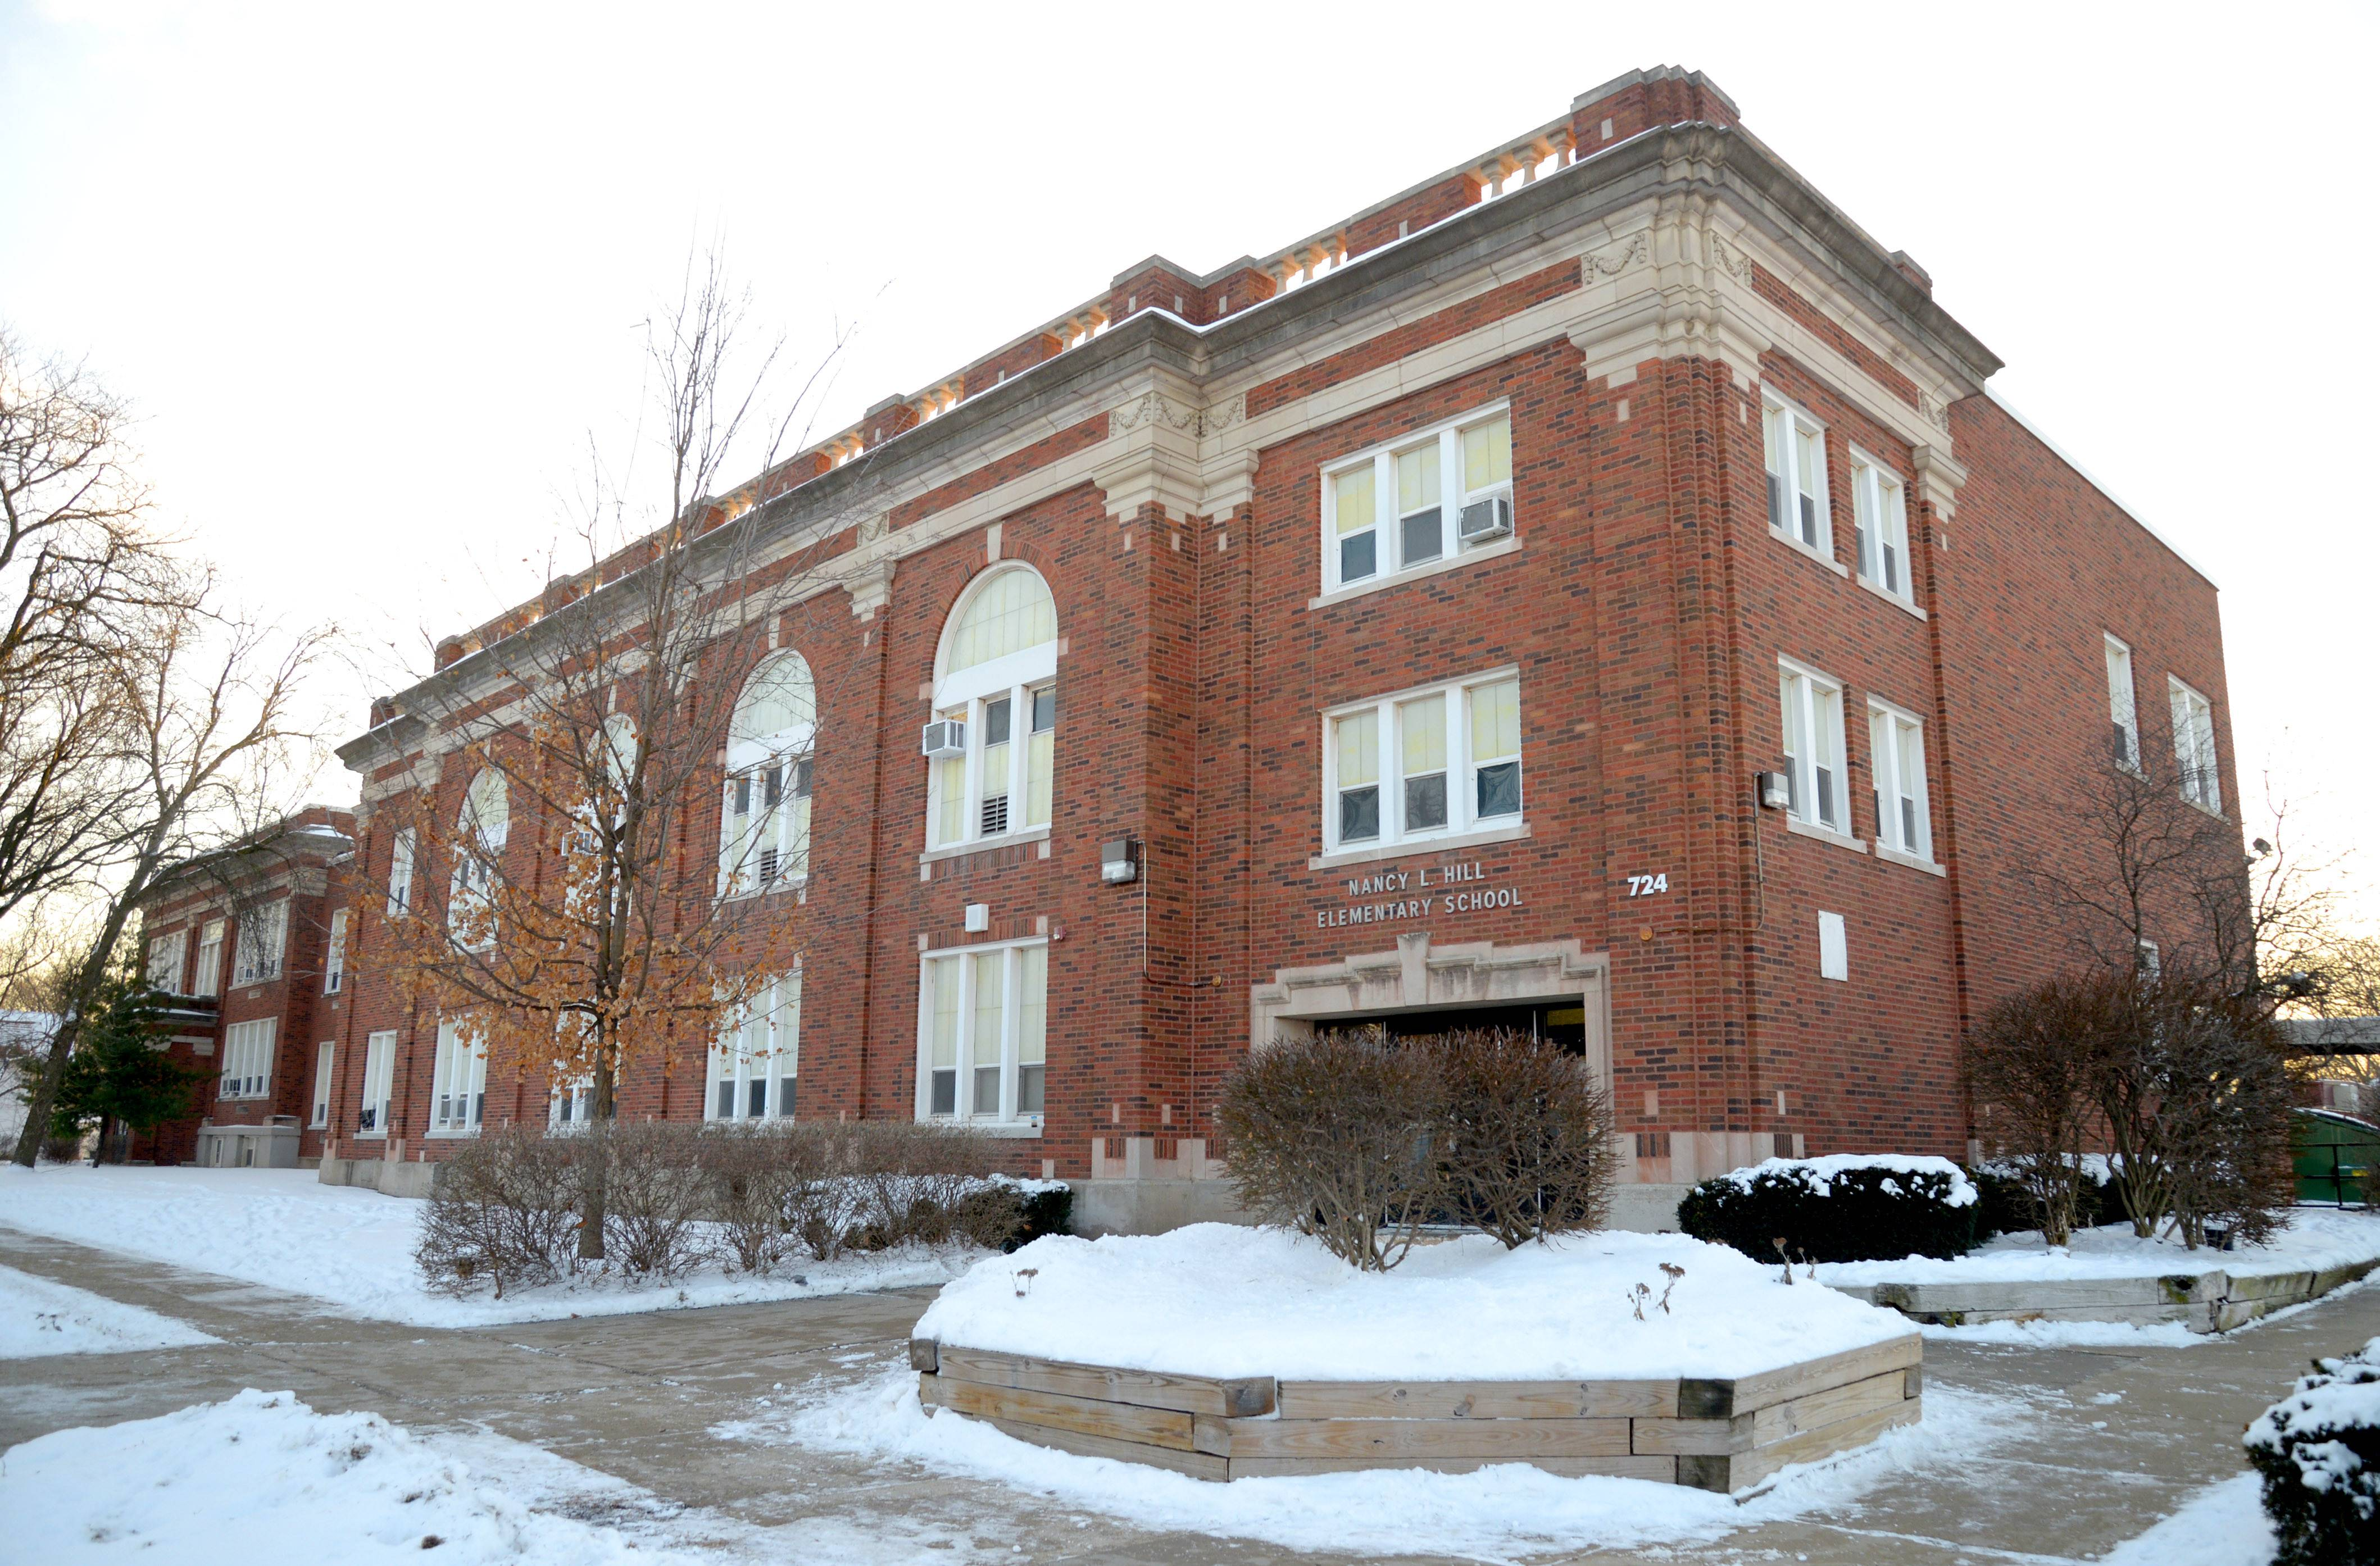 West Aurora District 129 voters will be asked in April to approve borrowing $84 million to build a replacement for Hill Elementary School at 724 Pennsylvania Ave., Aurora, and do other work at other schools.